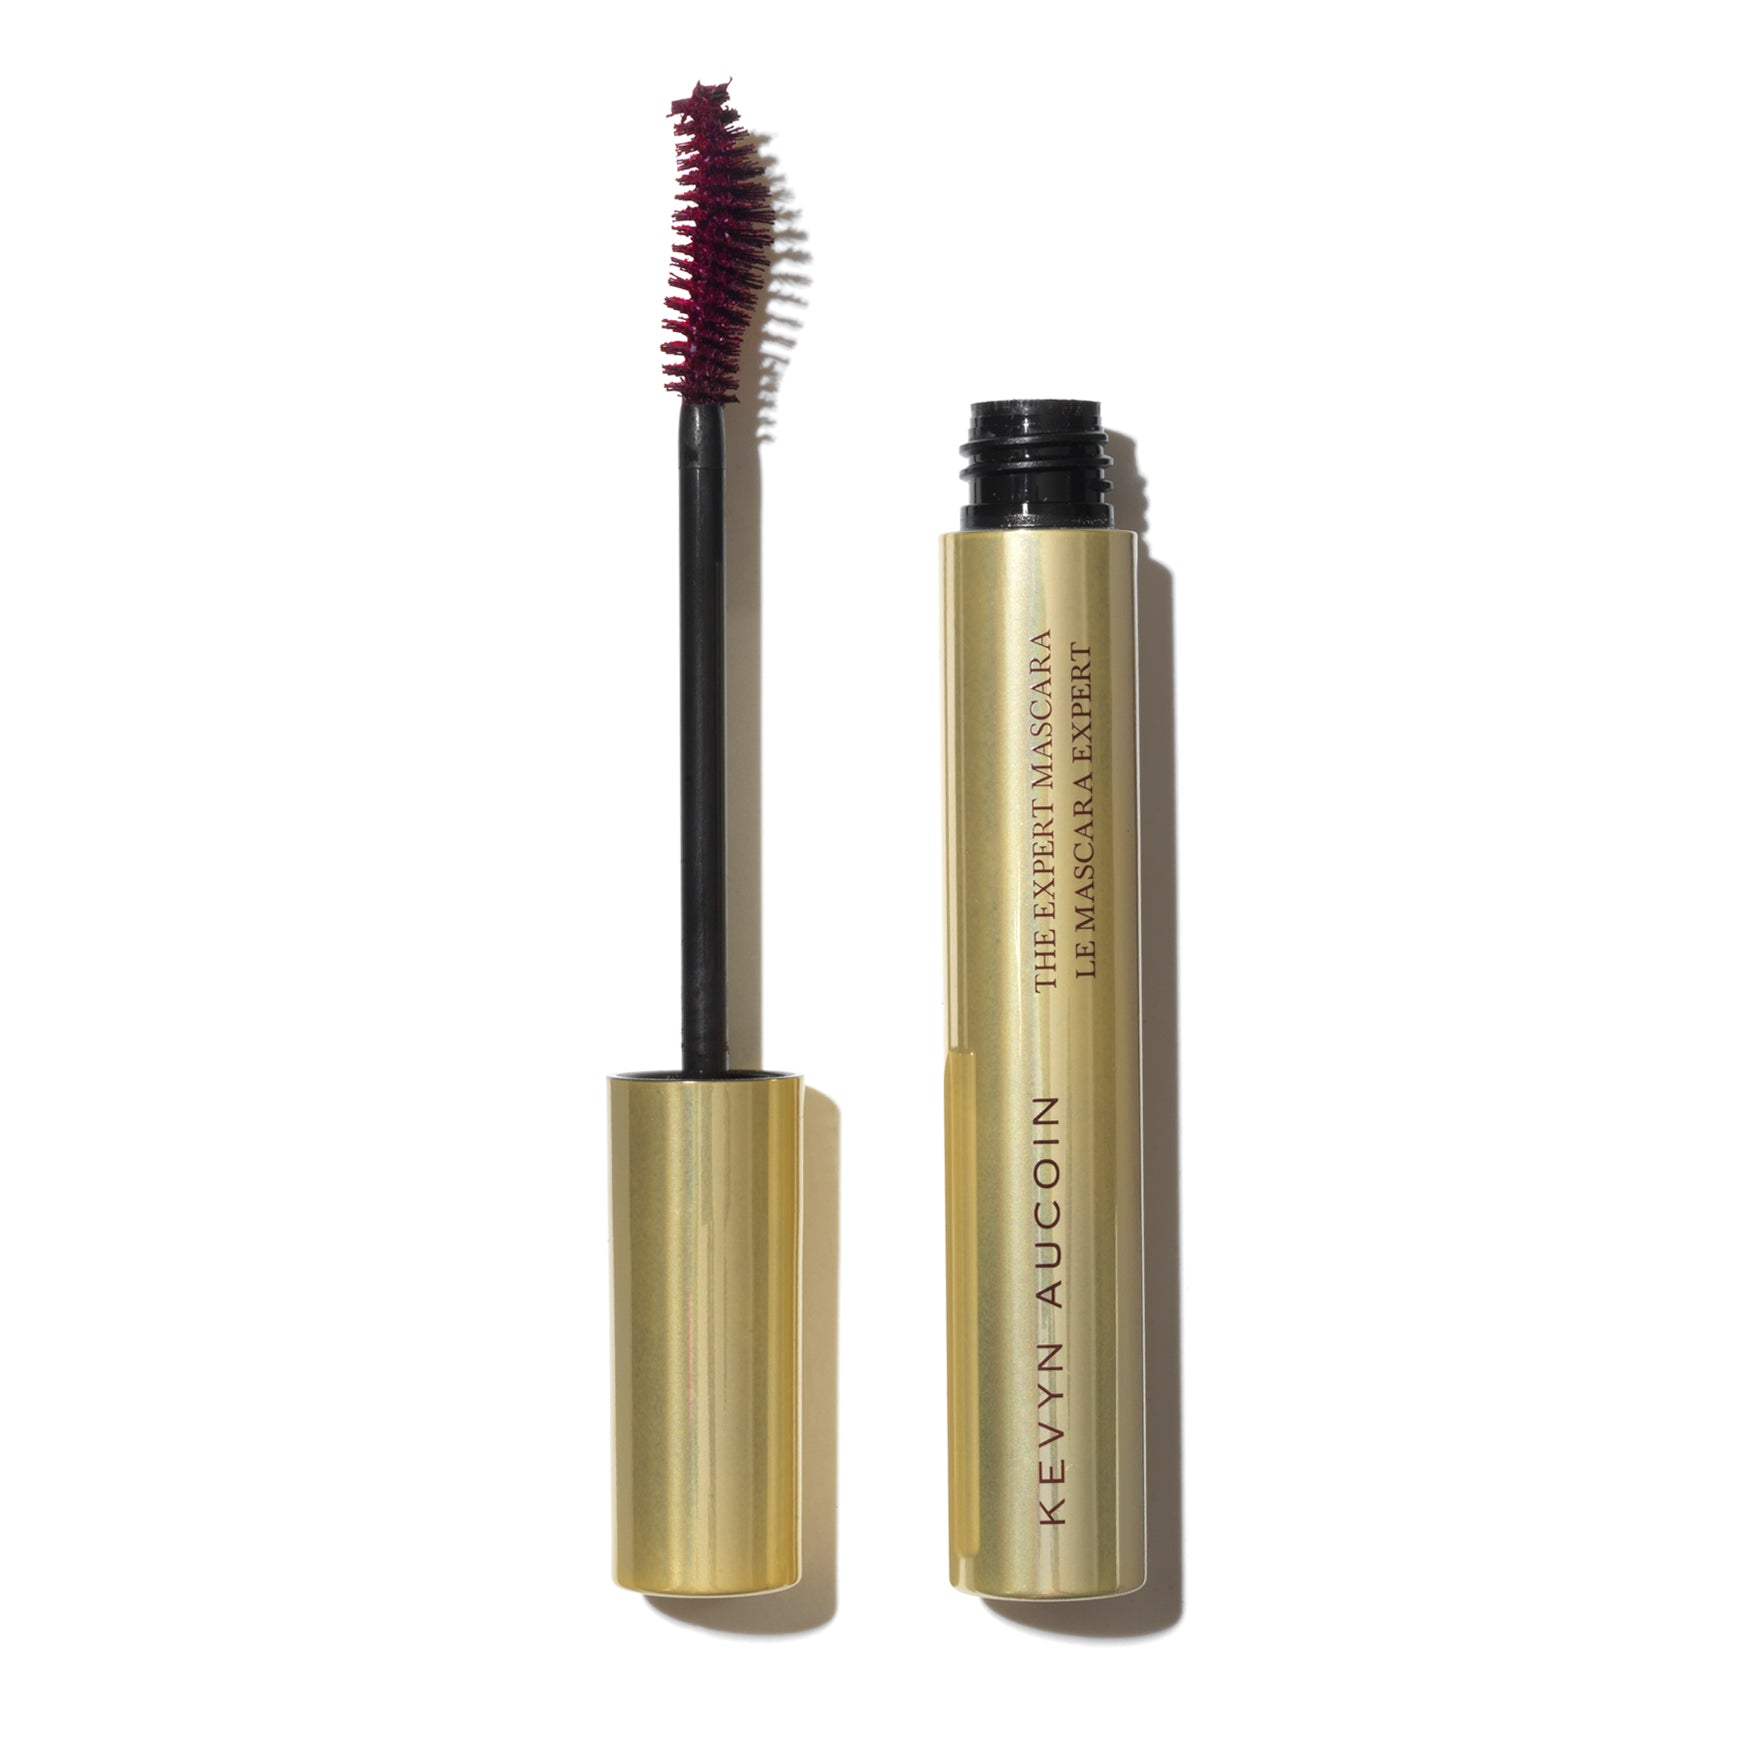 WHOLESALE KEVYN AUCOIN THE EXPERT MASCARA 0.34 OZ - BLOODROSES - 50 PIECE LOT